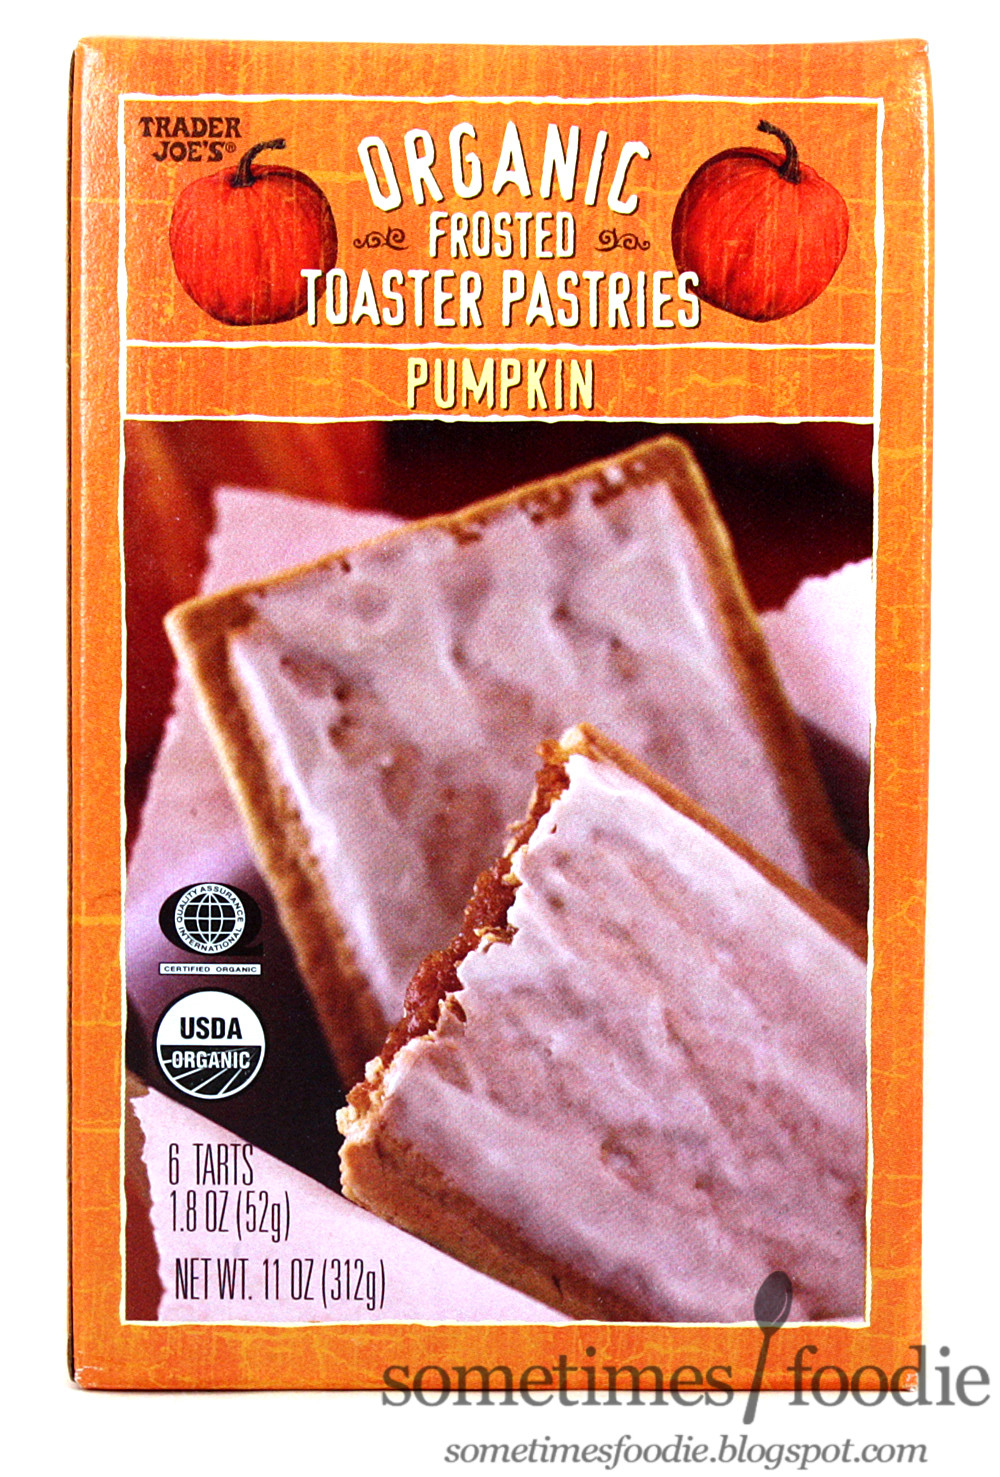 Organic Toaster Pastries  Sometimes Foo Pumpkin Organic Frosted Toaster Pastries